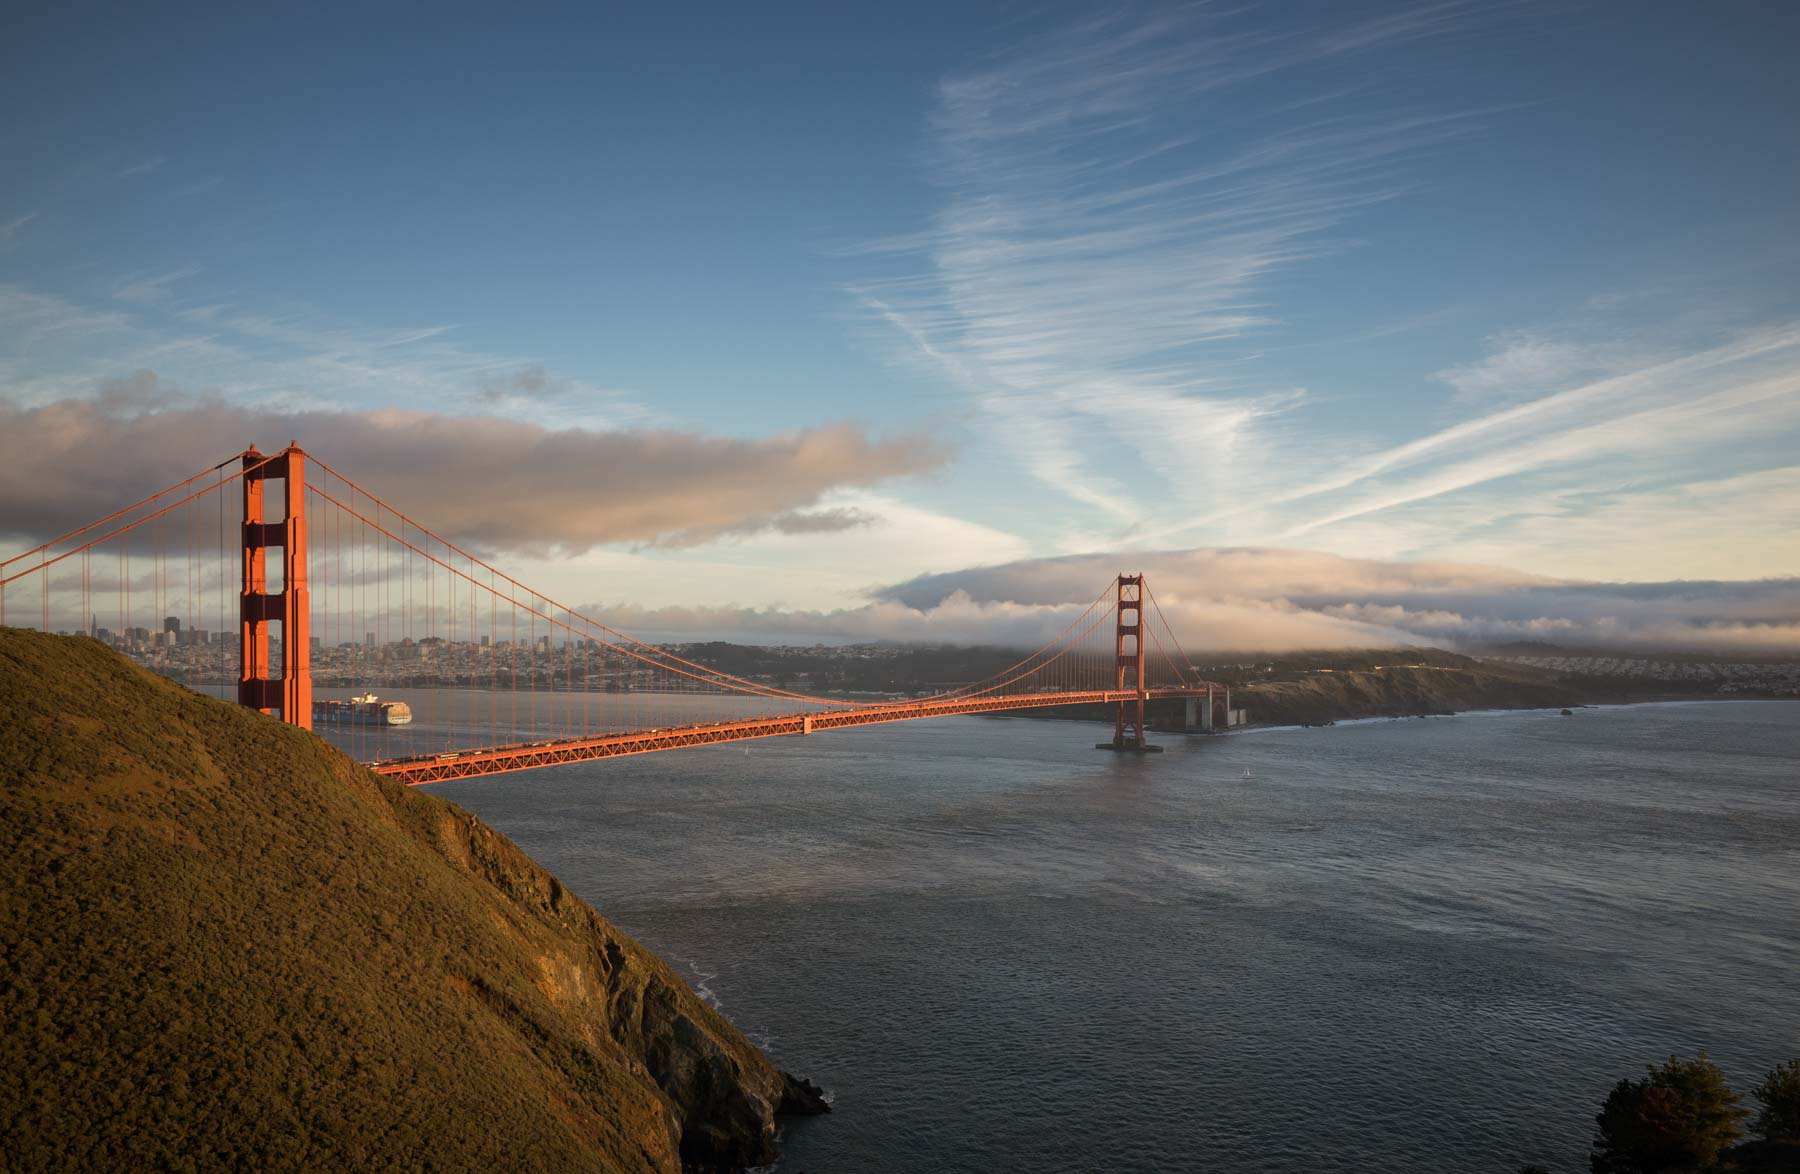 San francisco and landscape photography for San francisco landscape